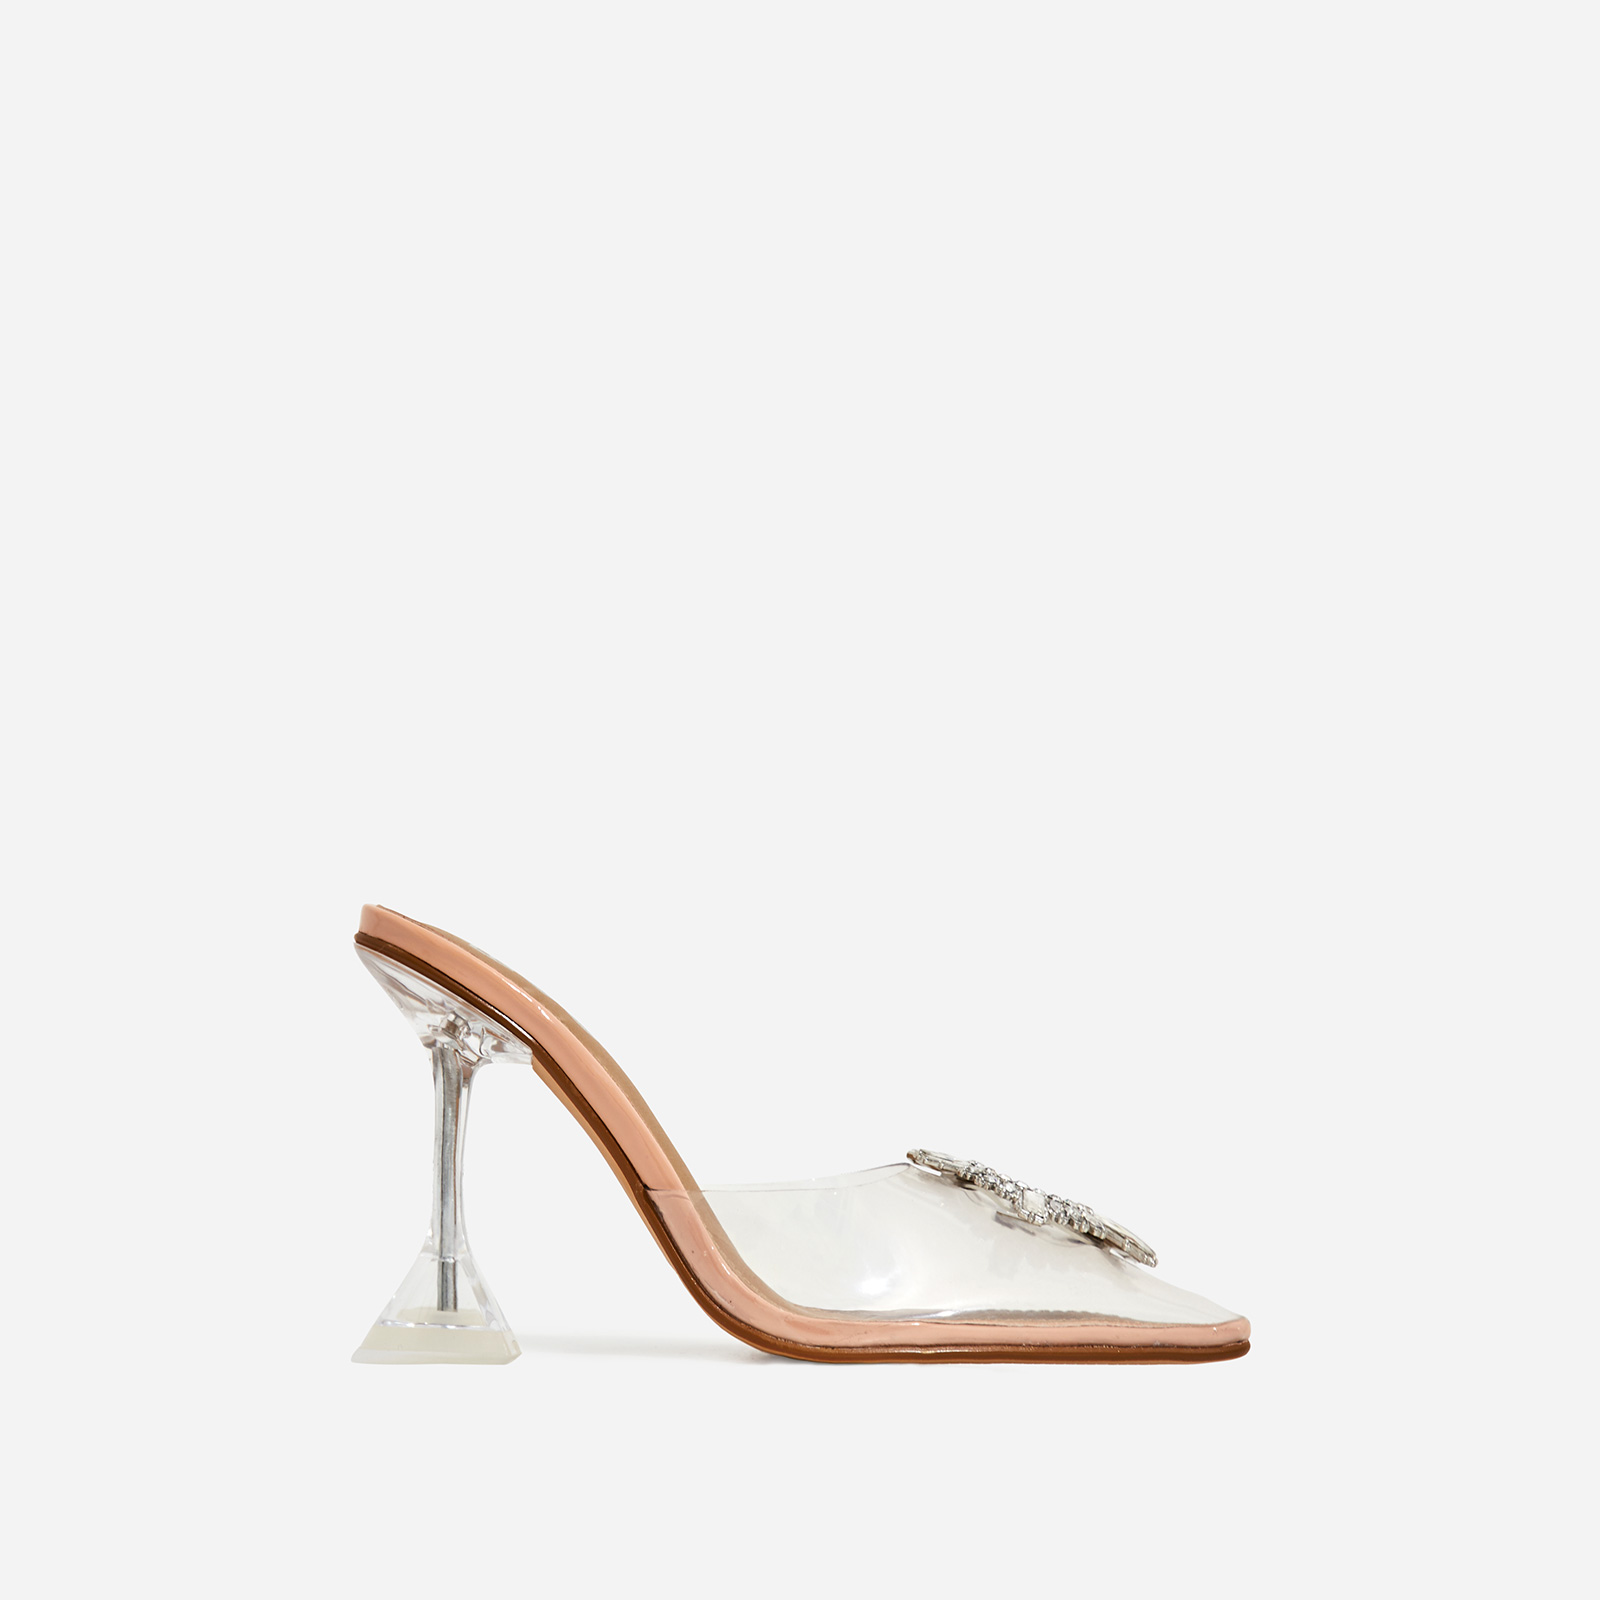 Midnight Diamante Detail Perspex Clear Heel Mule In Nude Patent